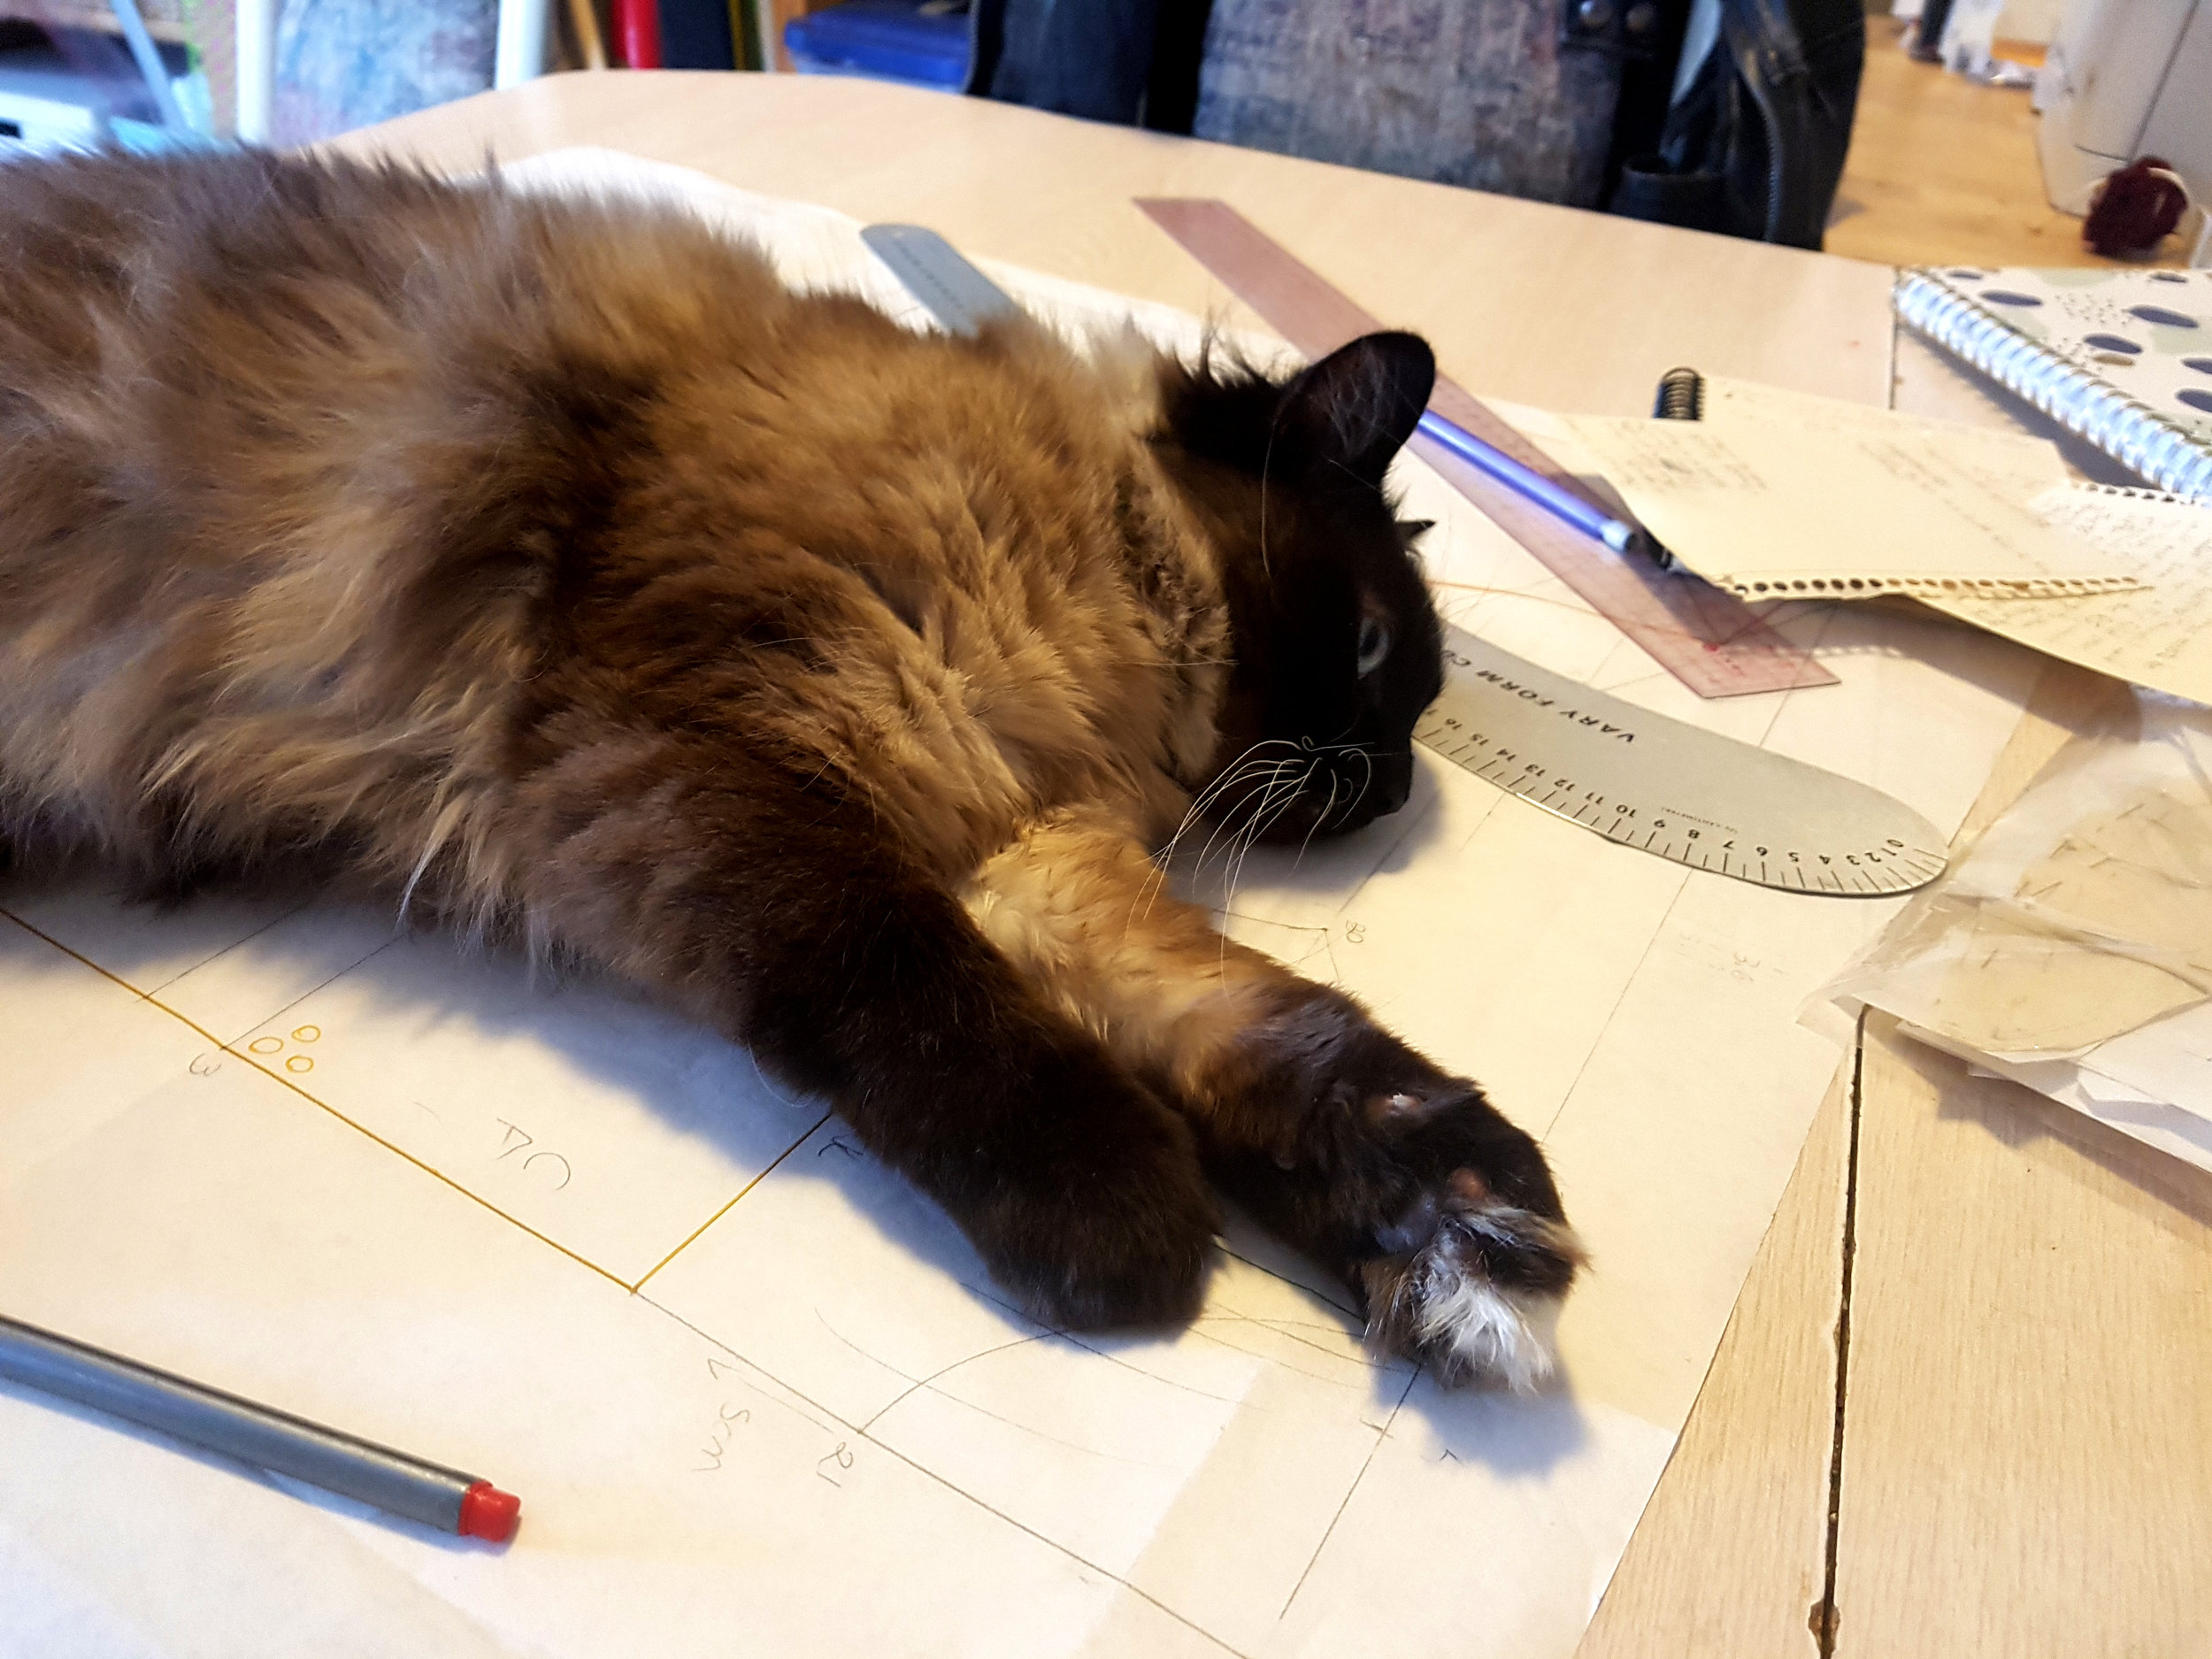 Seymour, my terrible assistant, laying on a pattern drafting project on my table. There's rulers and pencils scattered around. Seymour is a himalayan siamese with a dark face and paws, long fur, big blue eyes, and whiskers for days. His toe beans are nubbins. His stomach is fluffy. And he's just daring you to touch it.  (Don't touch it, he's a liar.)